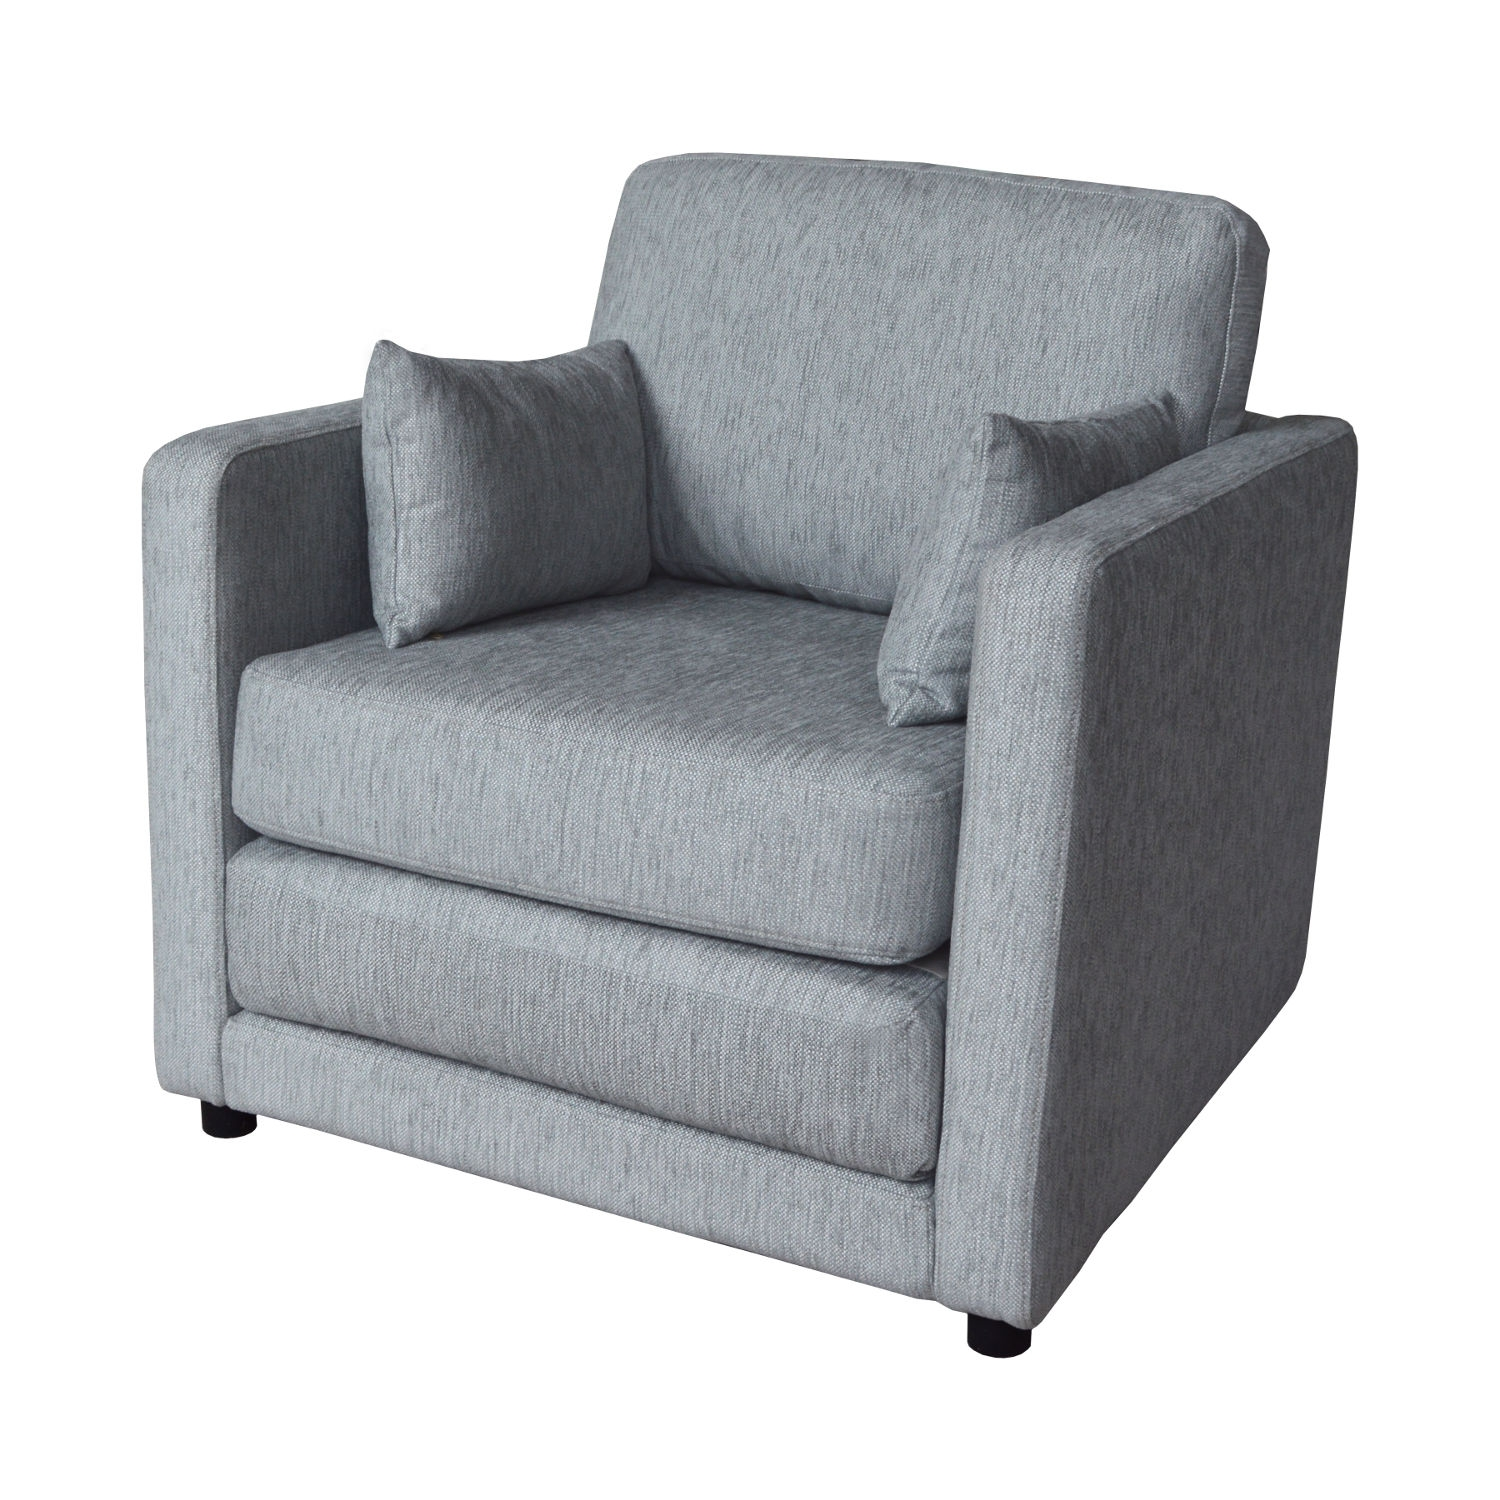 Chair Sofa Sleeper Chair Klaussner Tilly Small Sleeper Sofa With With Single Seat Sofa Chairs (View 15 of 15)